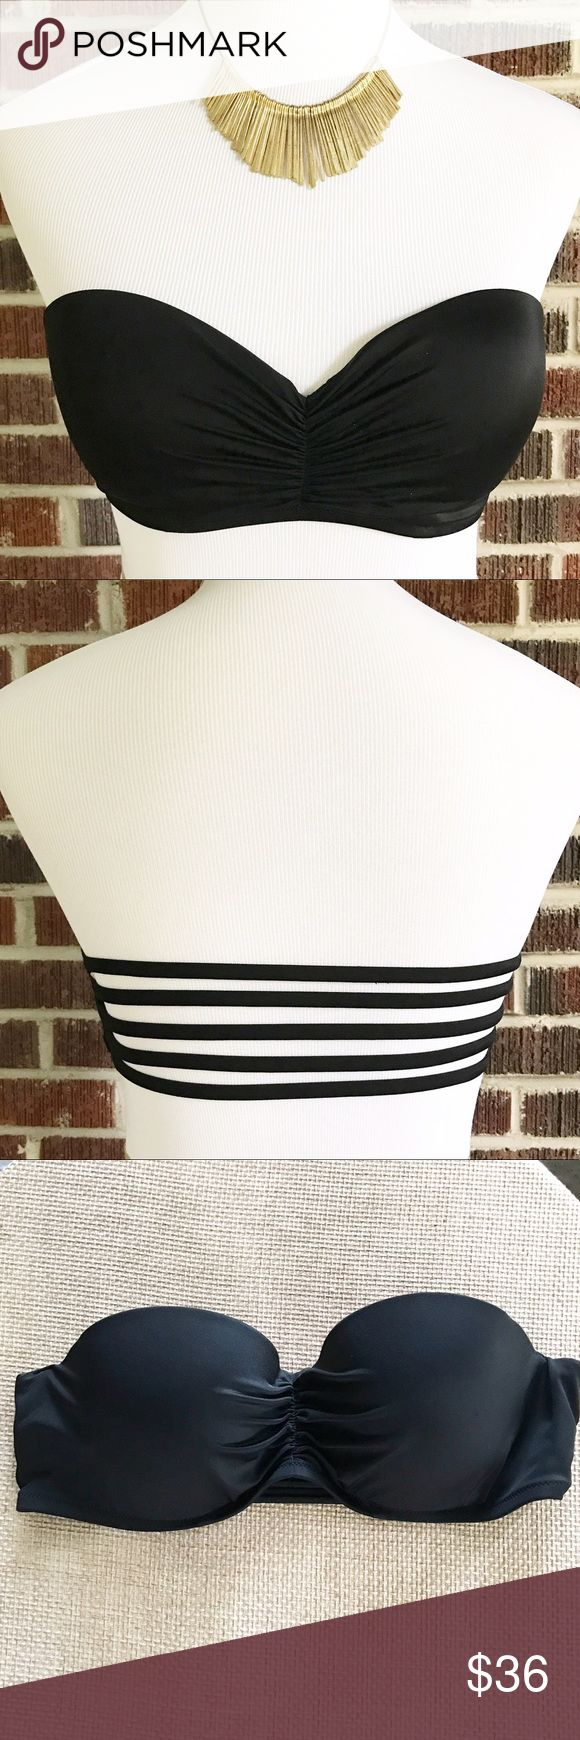 Victoria's Secret Underwire Bandeau Bikini Top Victoria's Secret Black Underwire Push-Up Bandeau Bikini Top in EUC.  It does have a few small picks on the left exterior cup.  It is missing the ties that go around the neck but who uses those anyway.  Pair with any color Bottom.  Would mix well with the Animal Print VS Bikini I have available in my closet.  This is a Top only. Victoria's Secret Swim